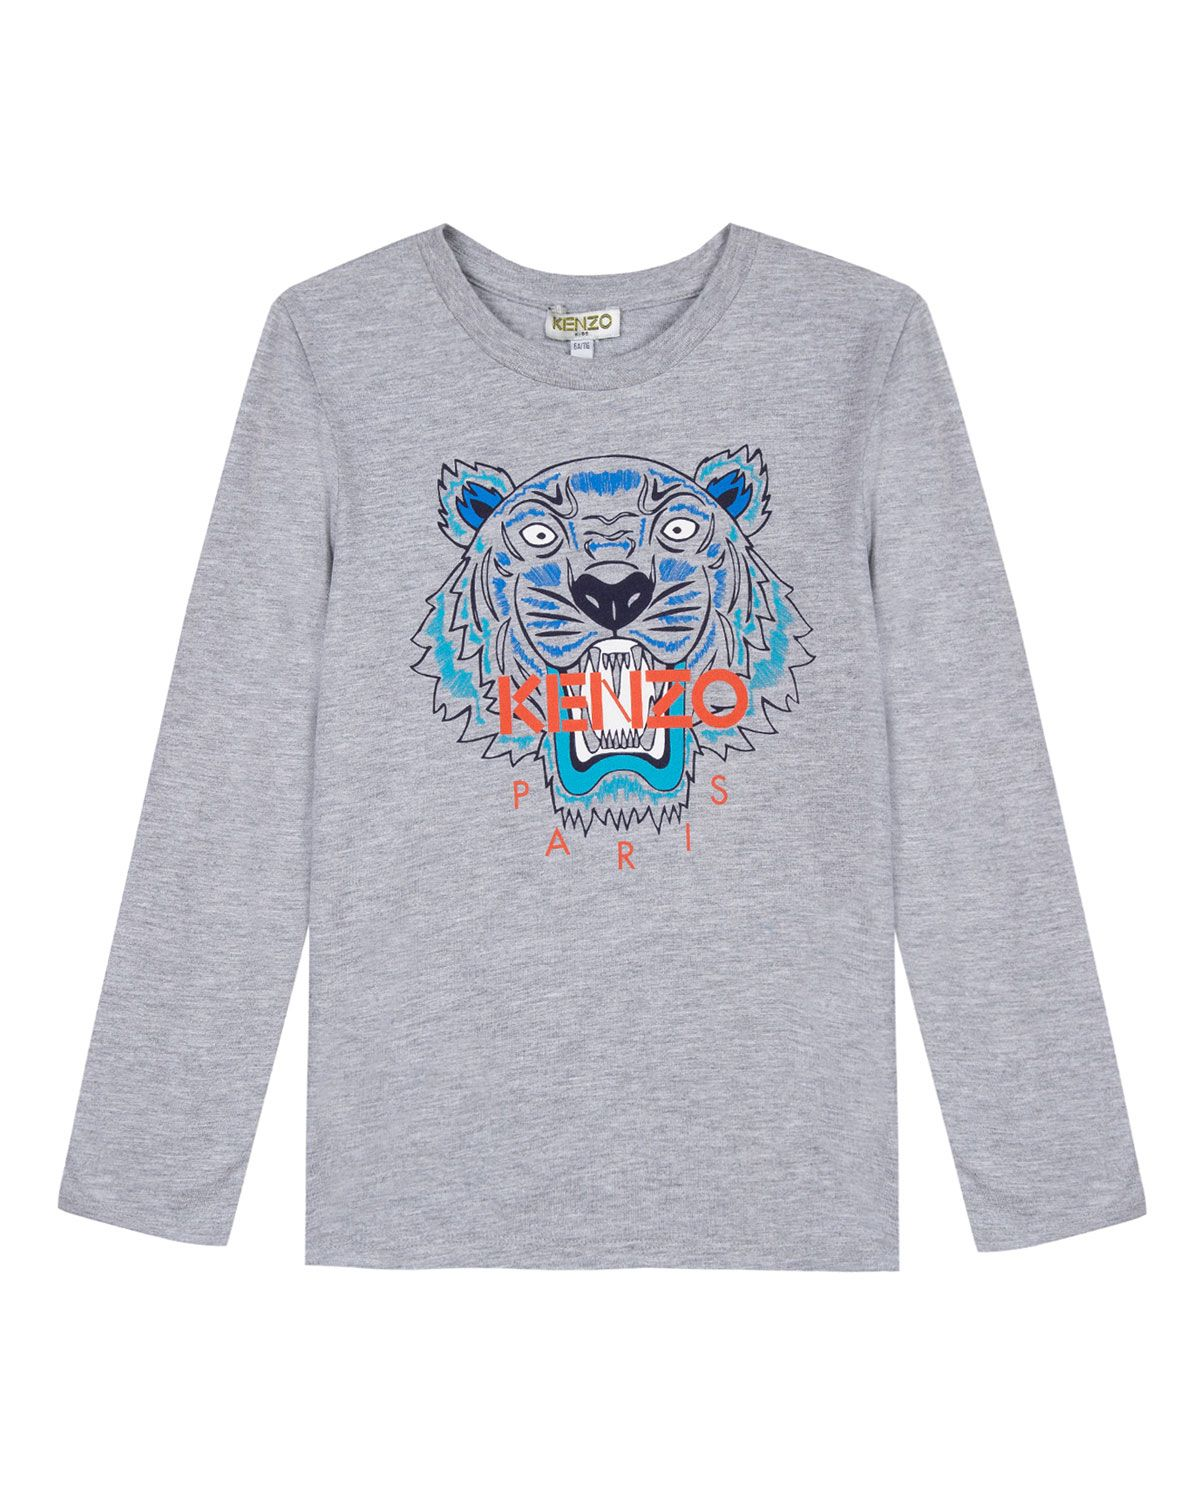 14728249 Kenzo Long-Sleeve Tiger Icon Tee, Size 14-16   Products   Pinterest ...